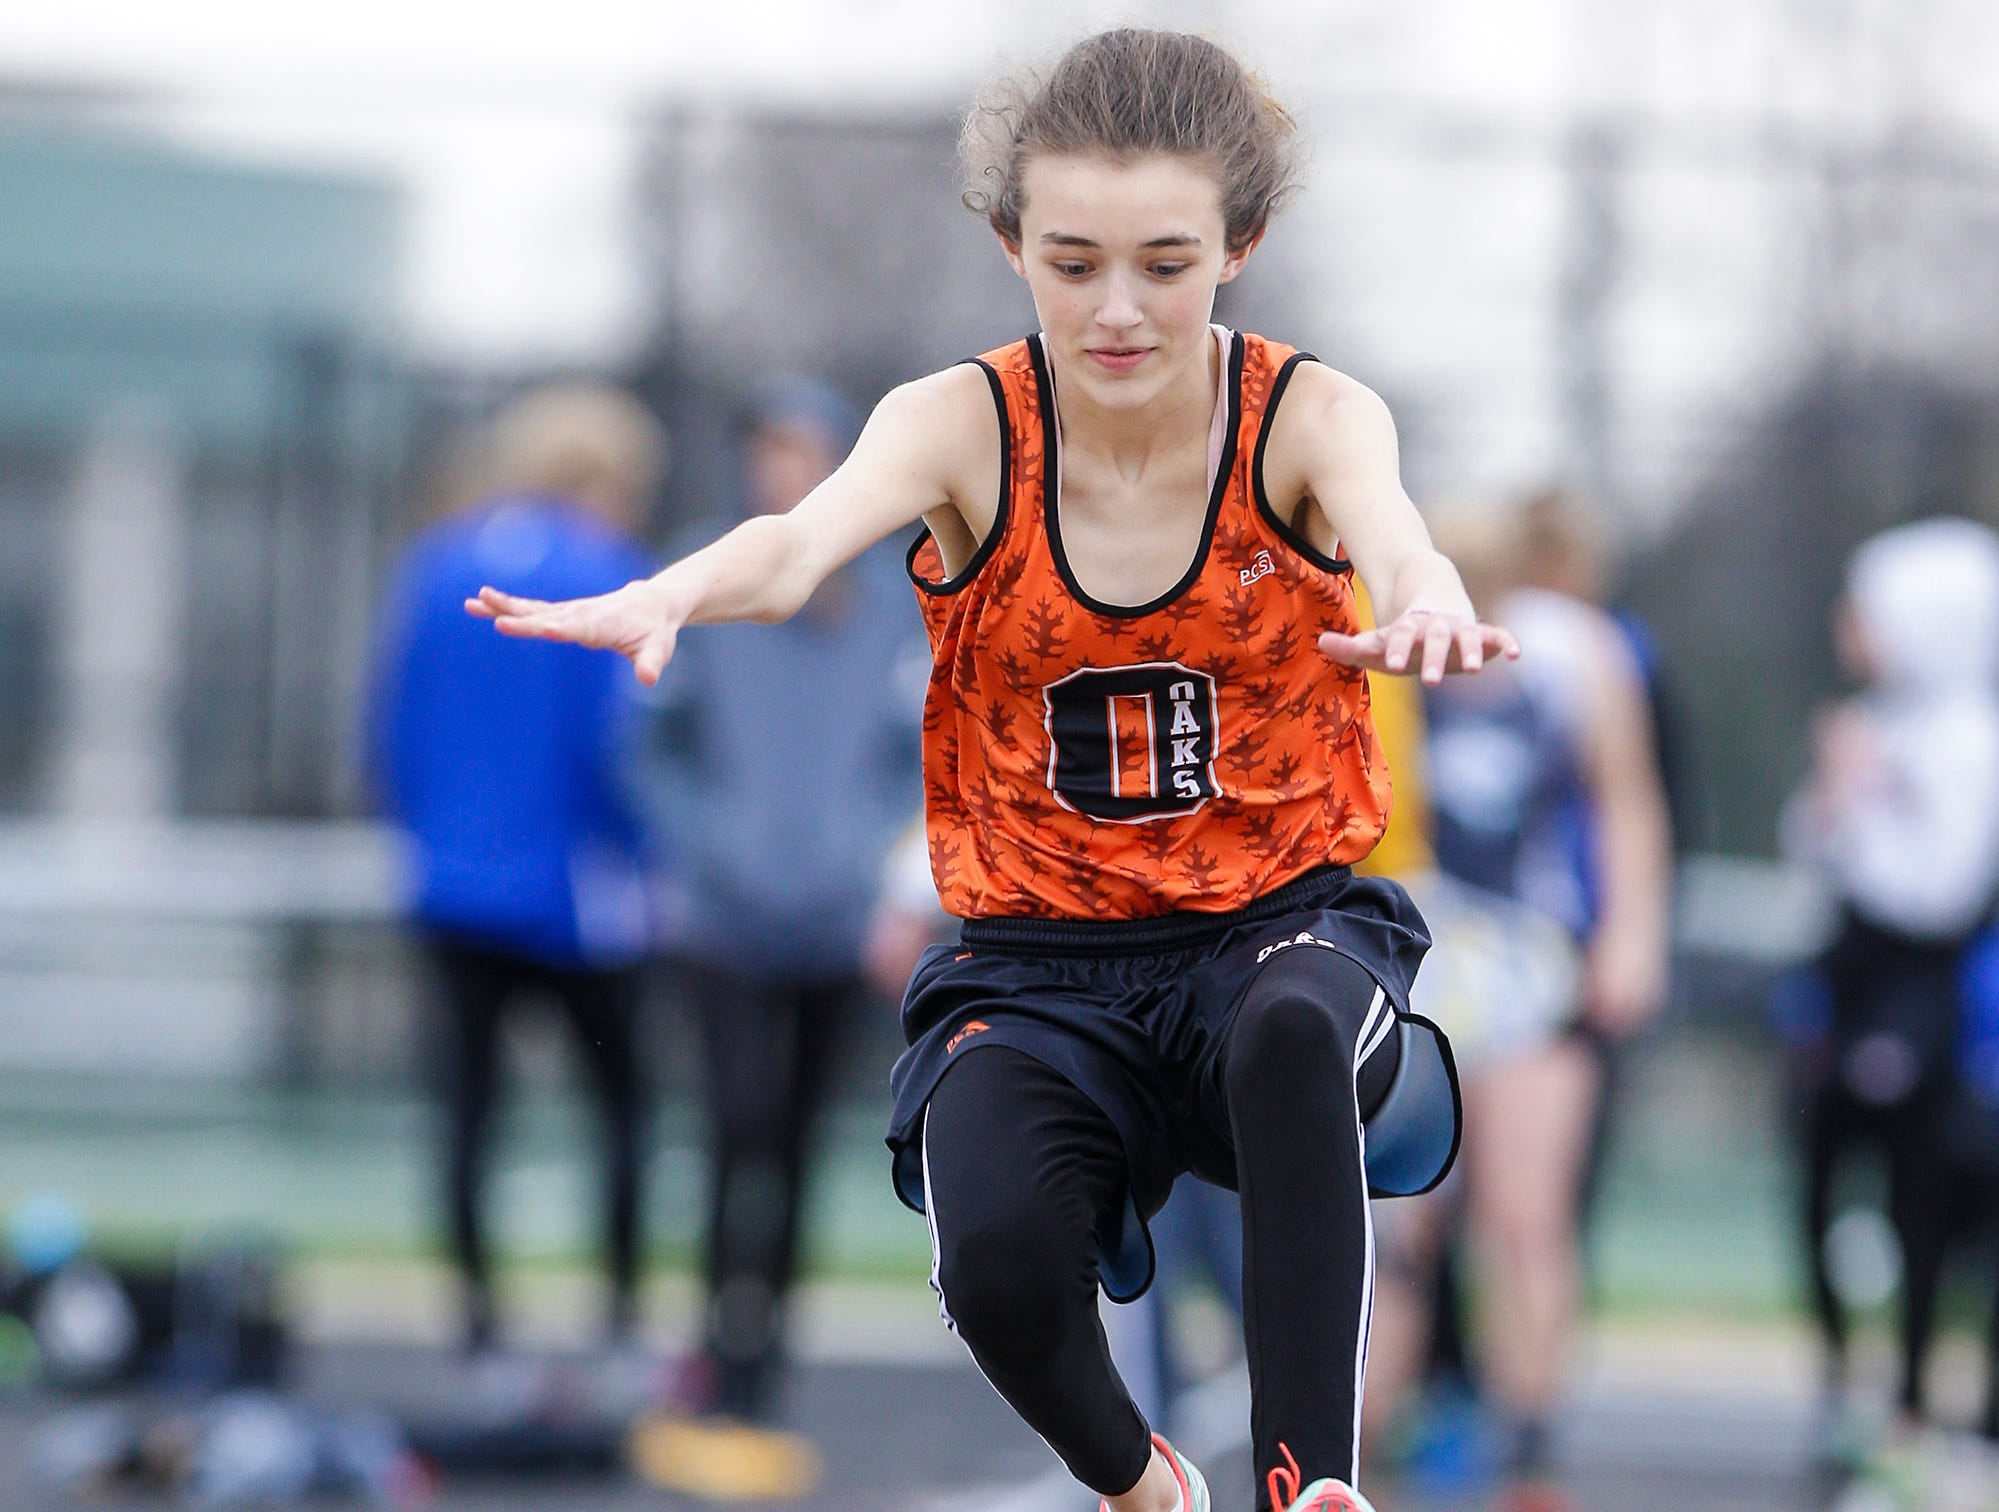 Emalie Seager of Oakfield High School competes in the long jump Friday, May 3, 2019 at the Waupun High School Invitational track and field meet. Doug Raflik/USA TODAY NETWORK-Wisconsin